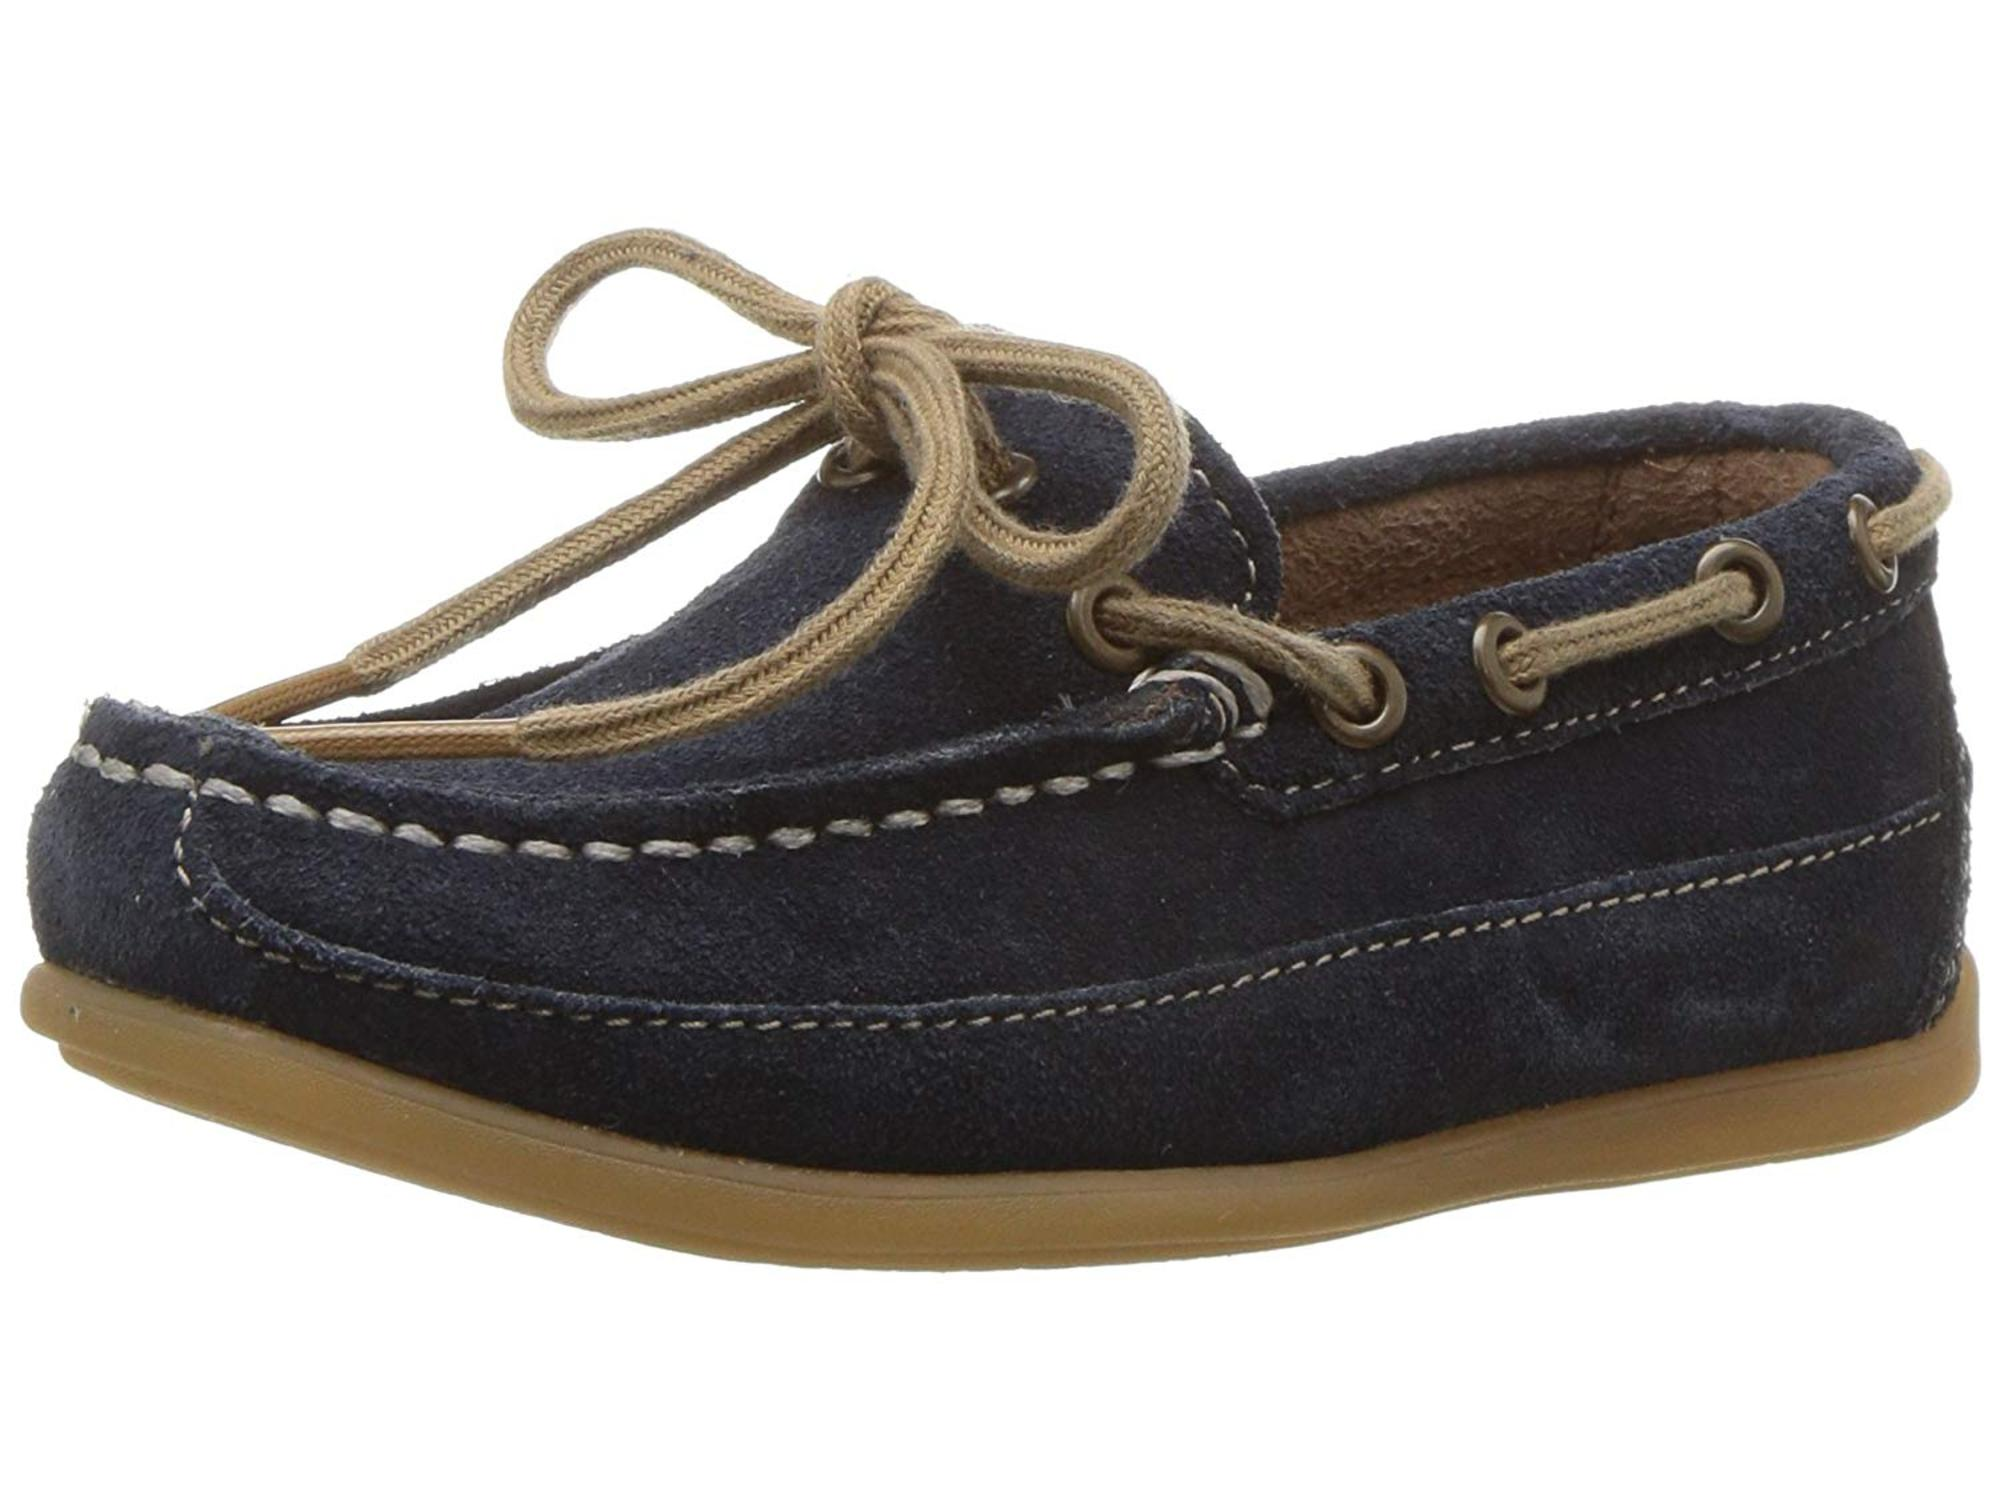 Florsheim Kids' Jasper Tie, Jr. Driving Style Loafer by Florsheim